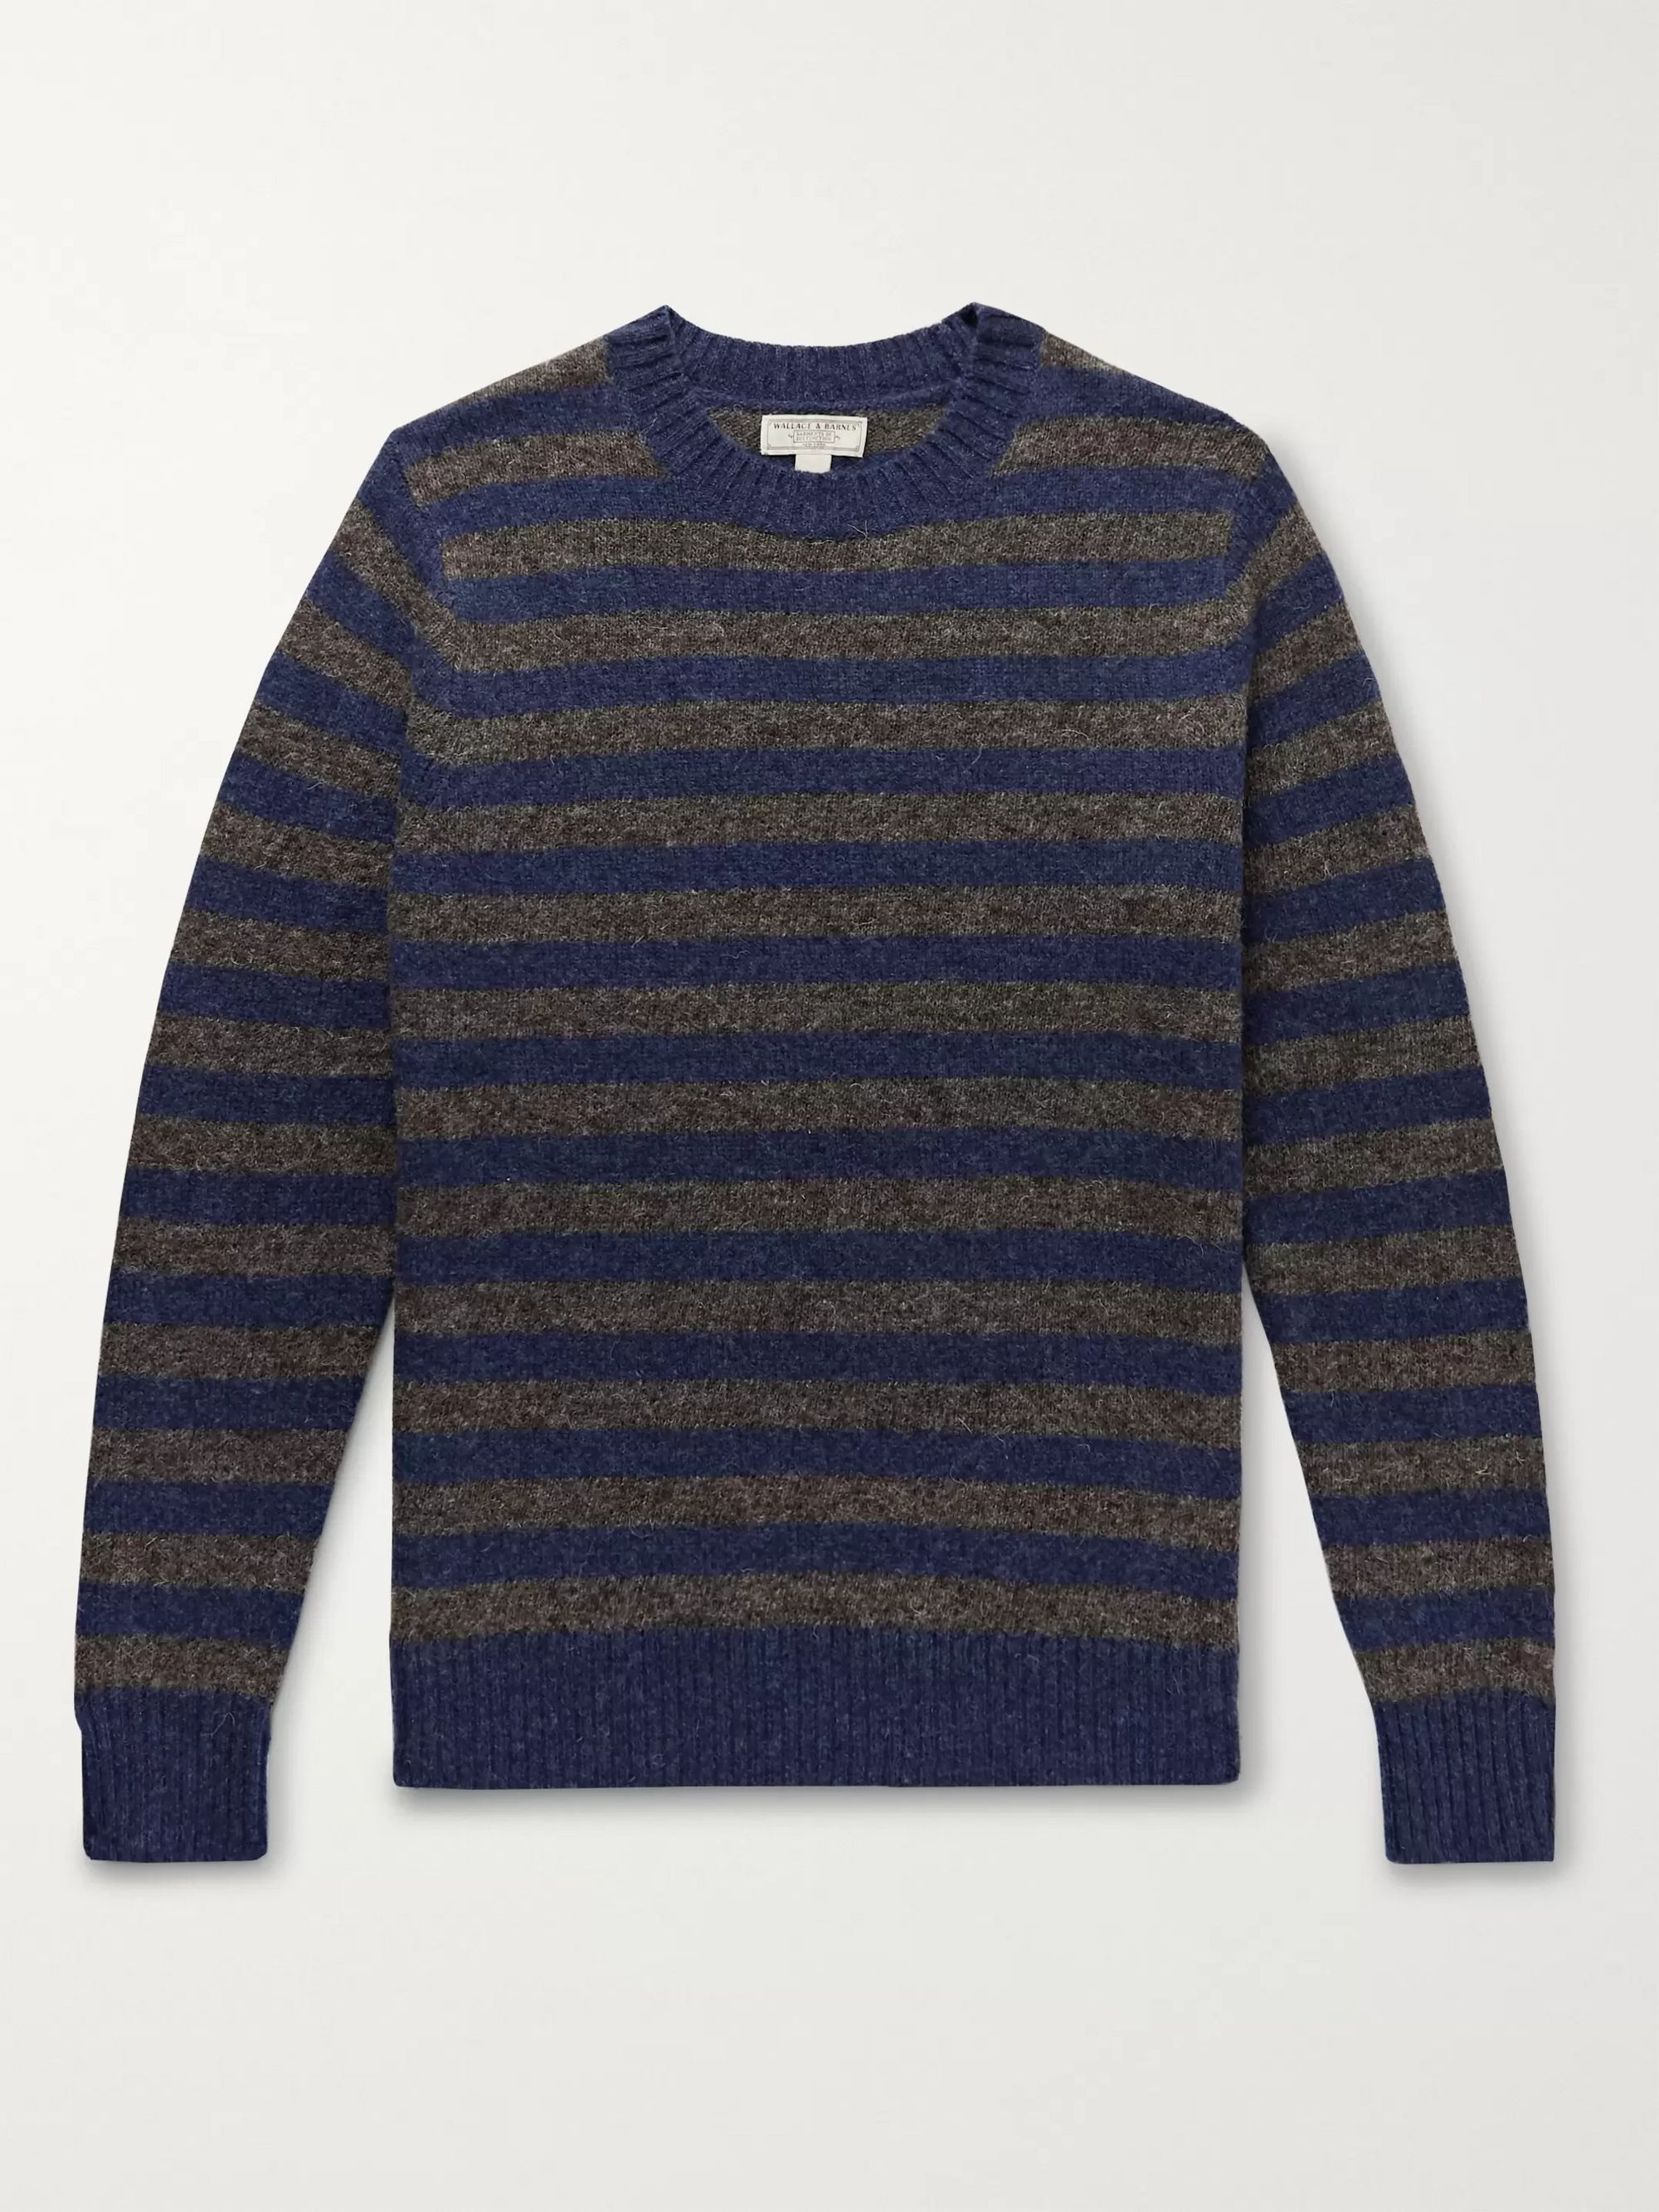 J.Crew Wallace & Barnes Striped Wool Sweater